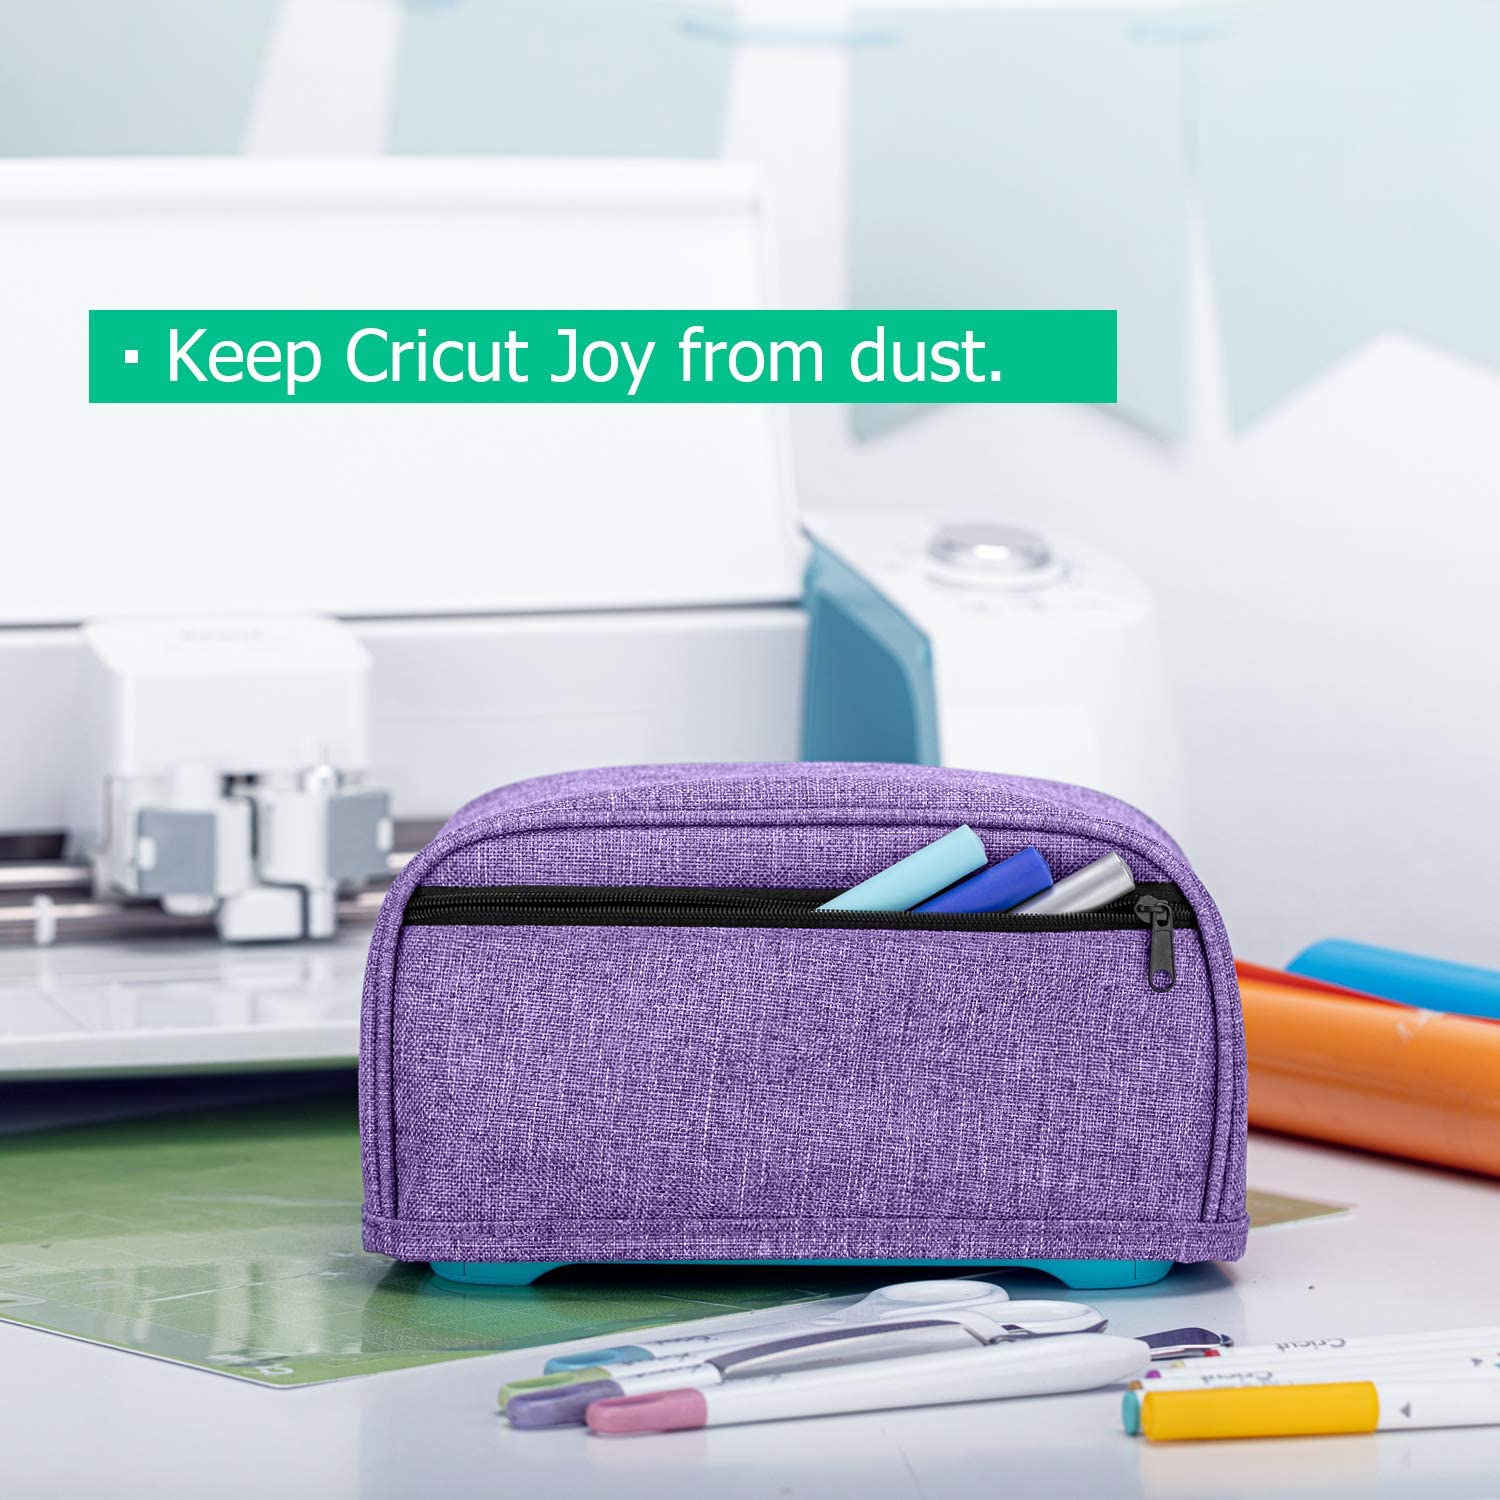 Heavy Duty Canvas Cover with Zipper Pocket and Wipe Clean Liner Yarwo Dust Cover Compatible with Cricut Joy Tree